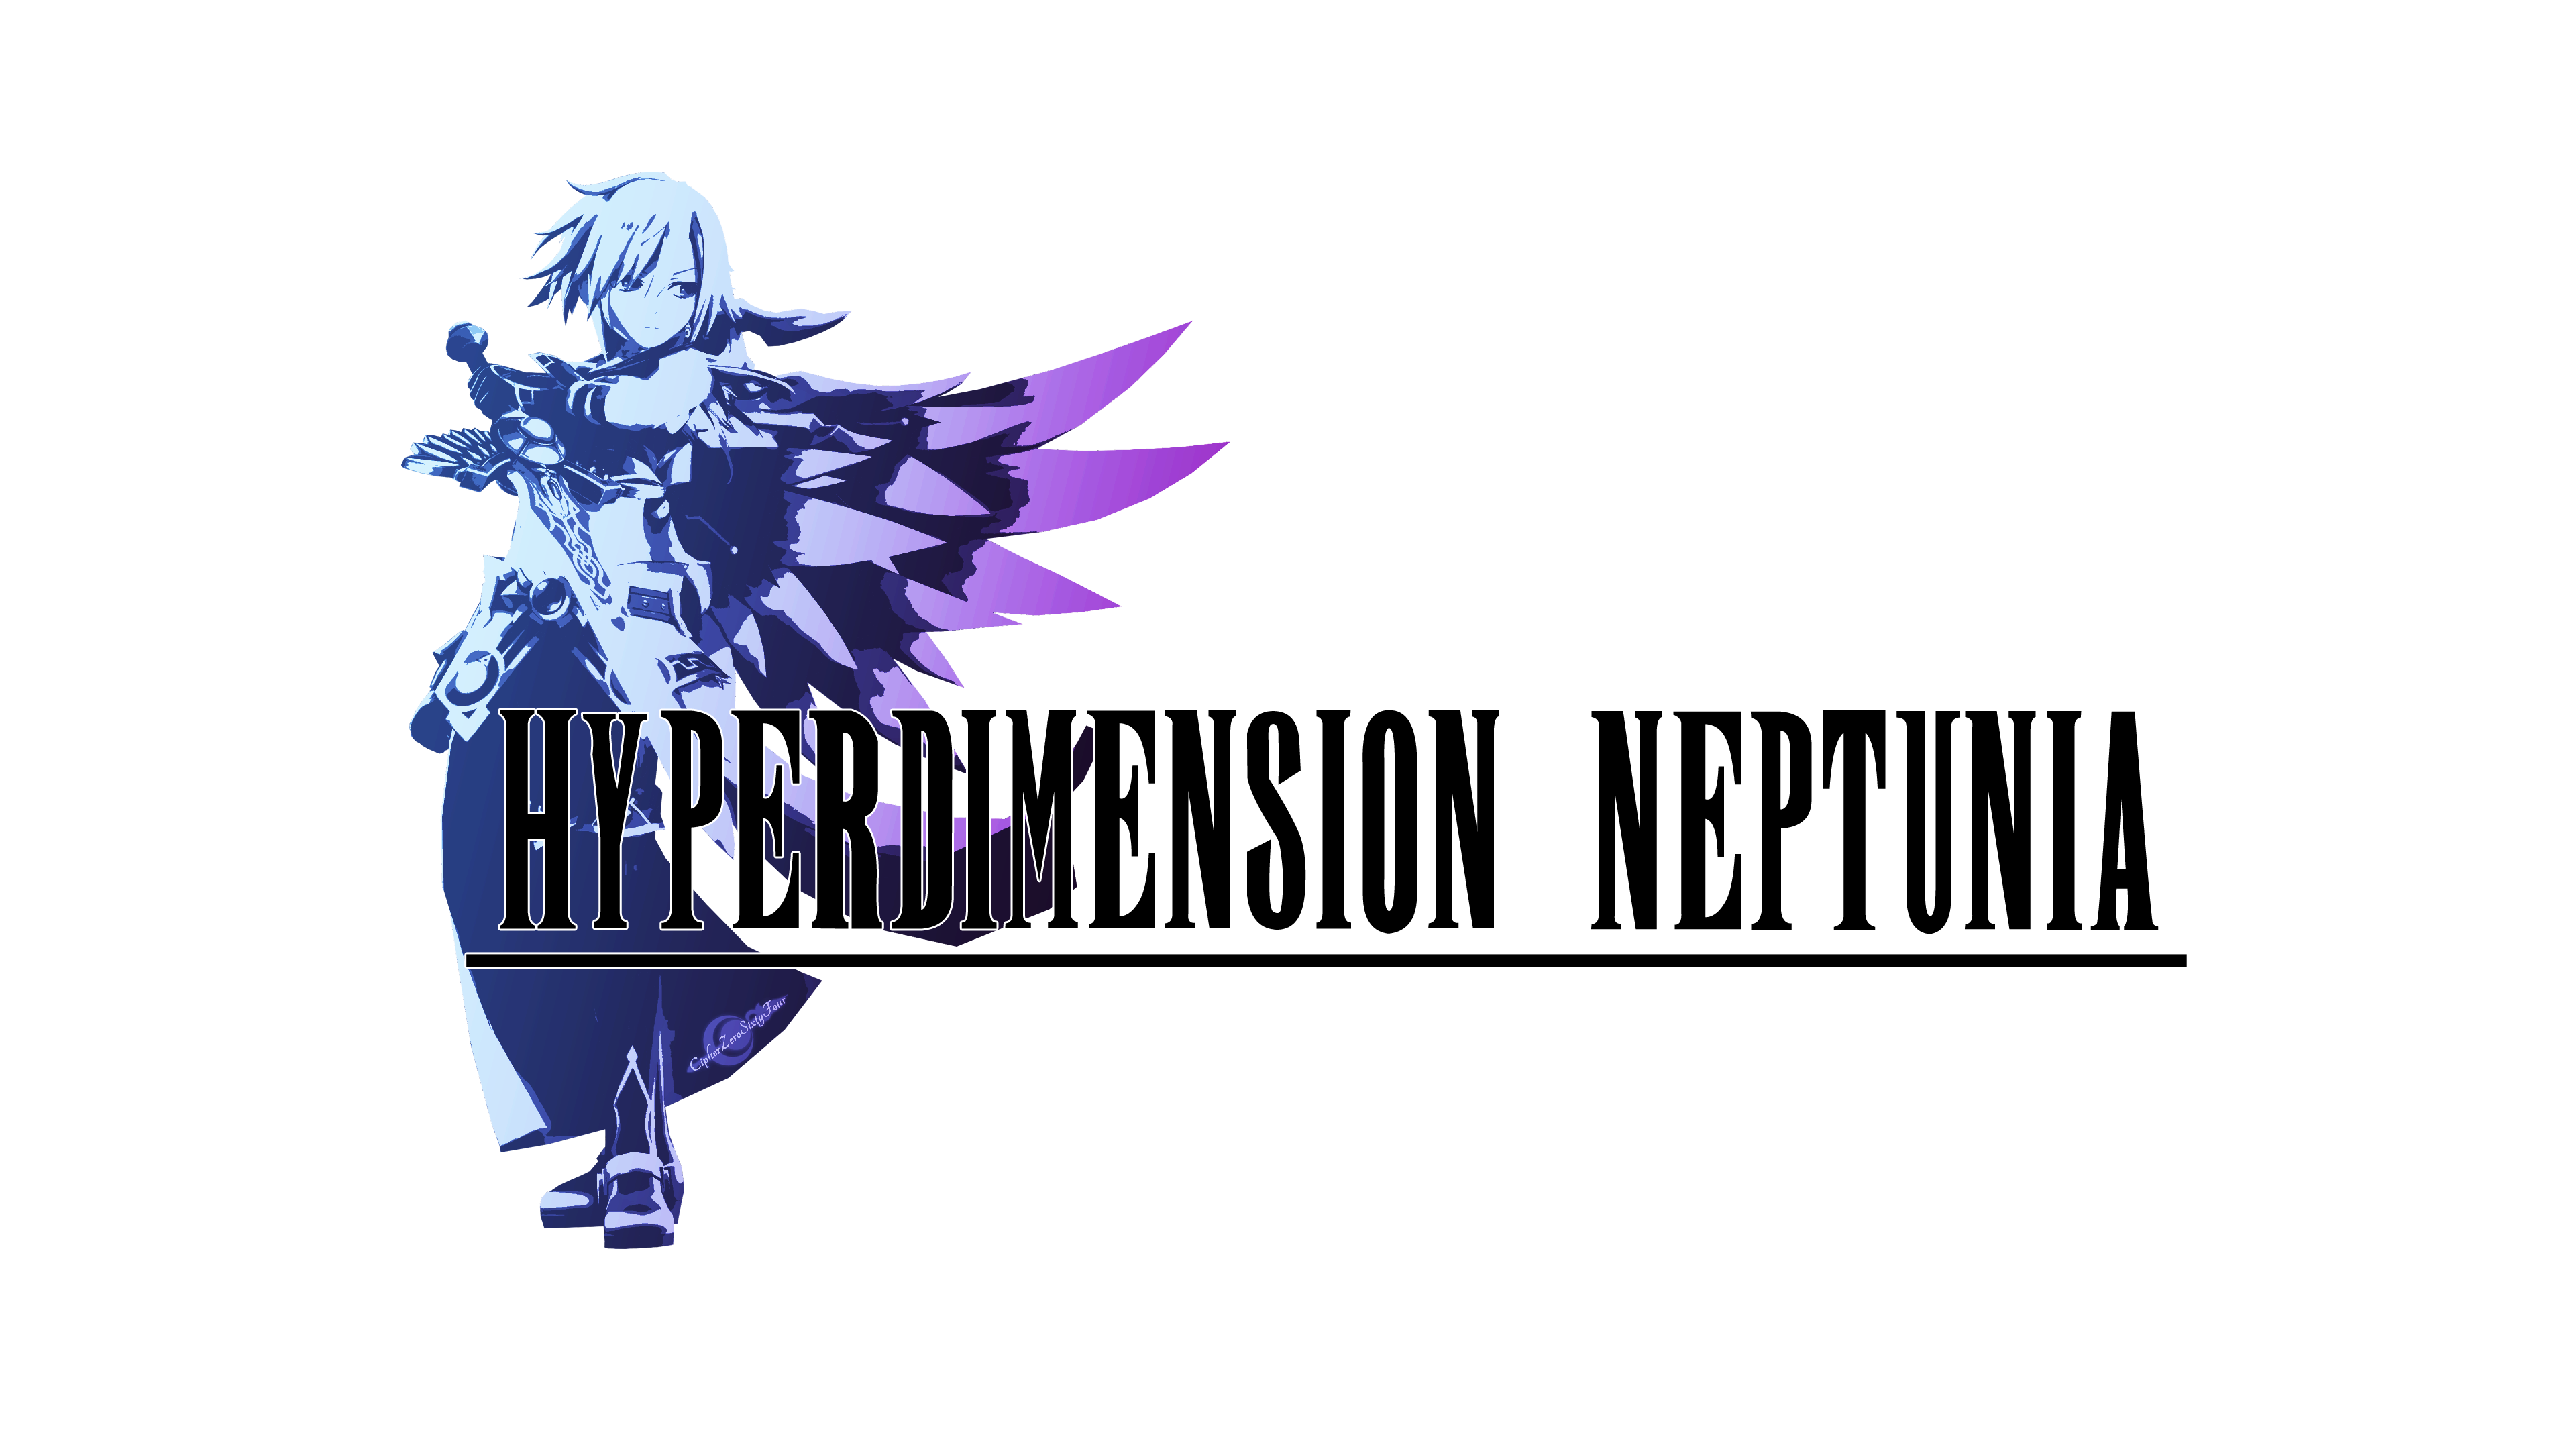 Hyperdimension Neptunia logo, but it\'s in the style of Final.